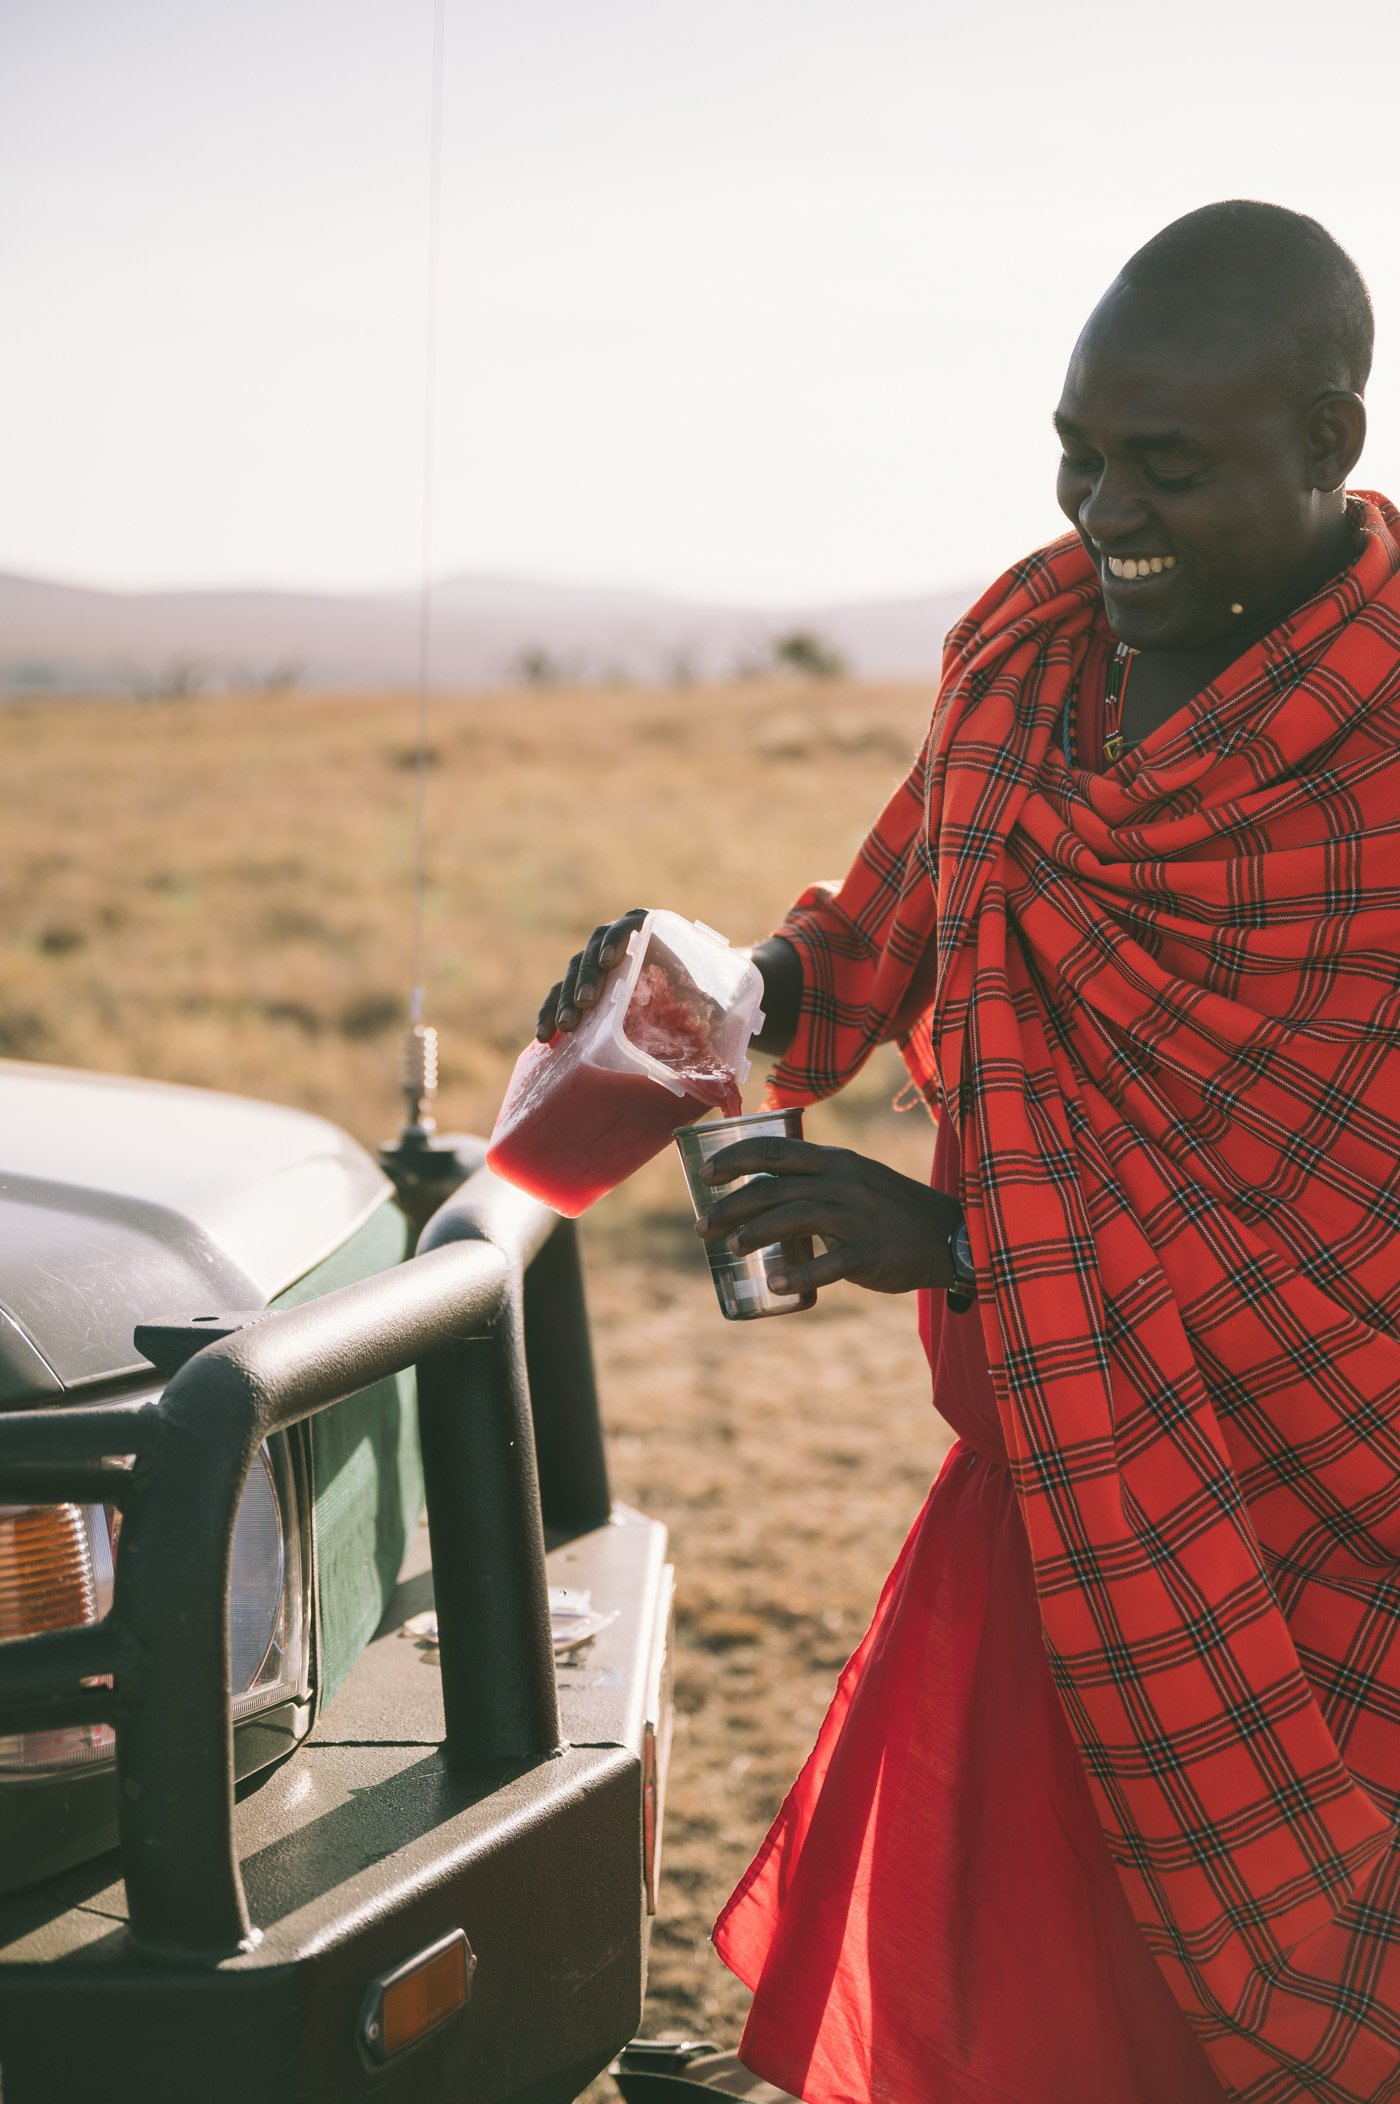 Our guide David serving a tree tomato juice at Lewa Wildlife Conservancy Kenya